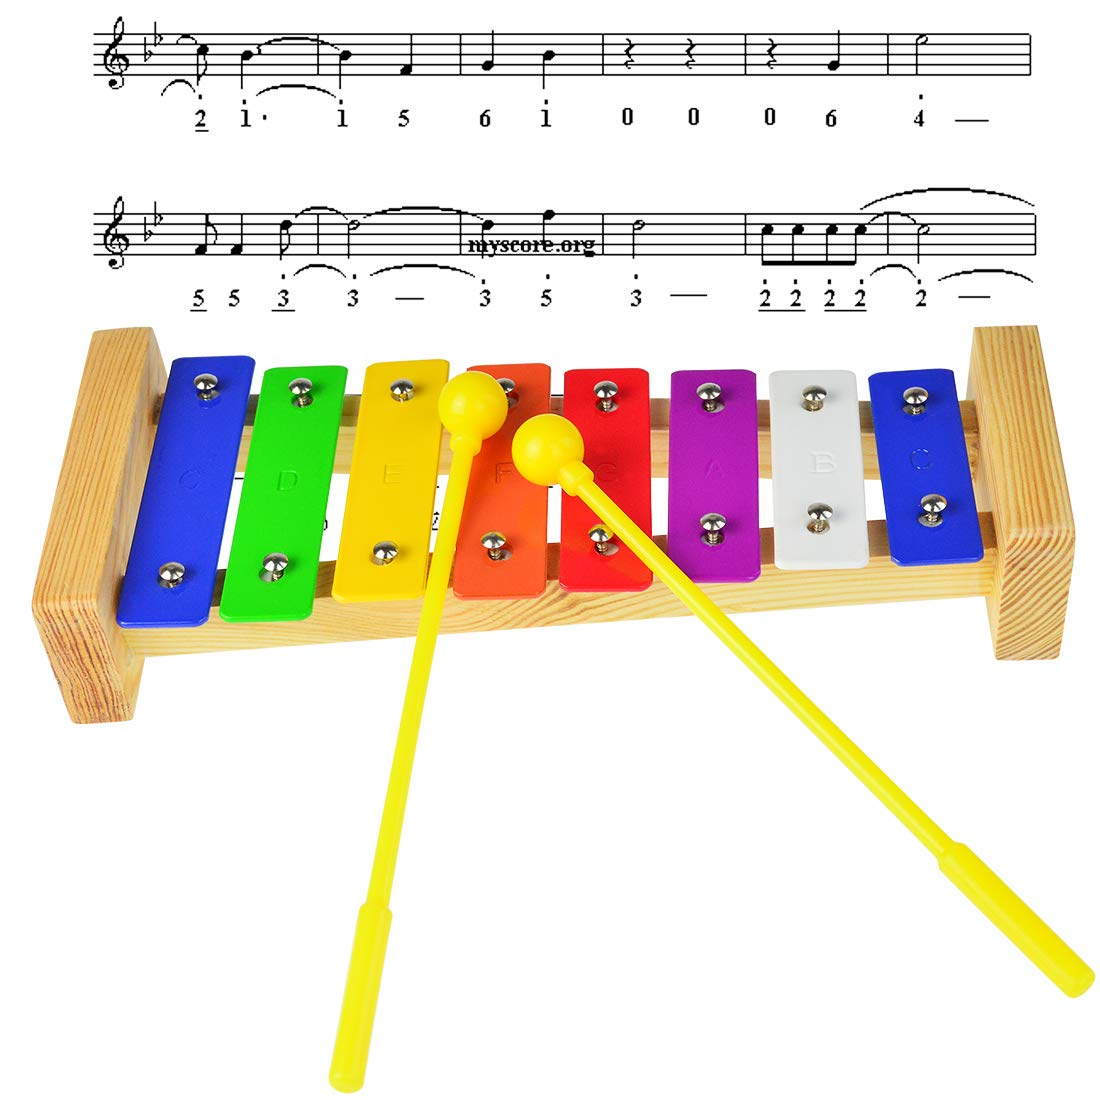 Xylophone for Kids,Yolyoo Wooden Musical Toy Musical Instruments with Child Safe Mallets and Harmonica for Kids Toddlers